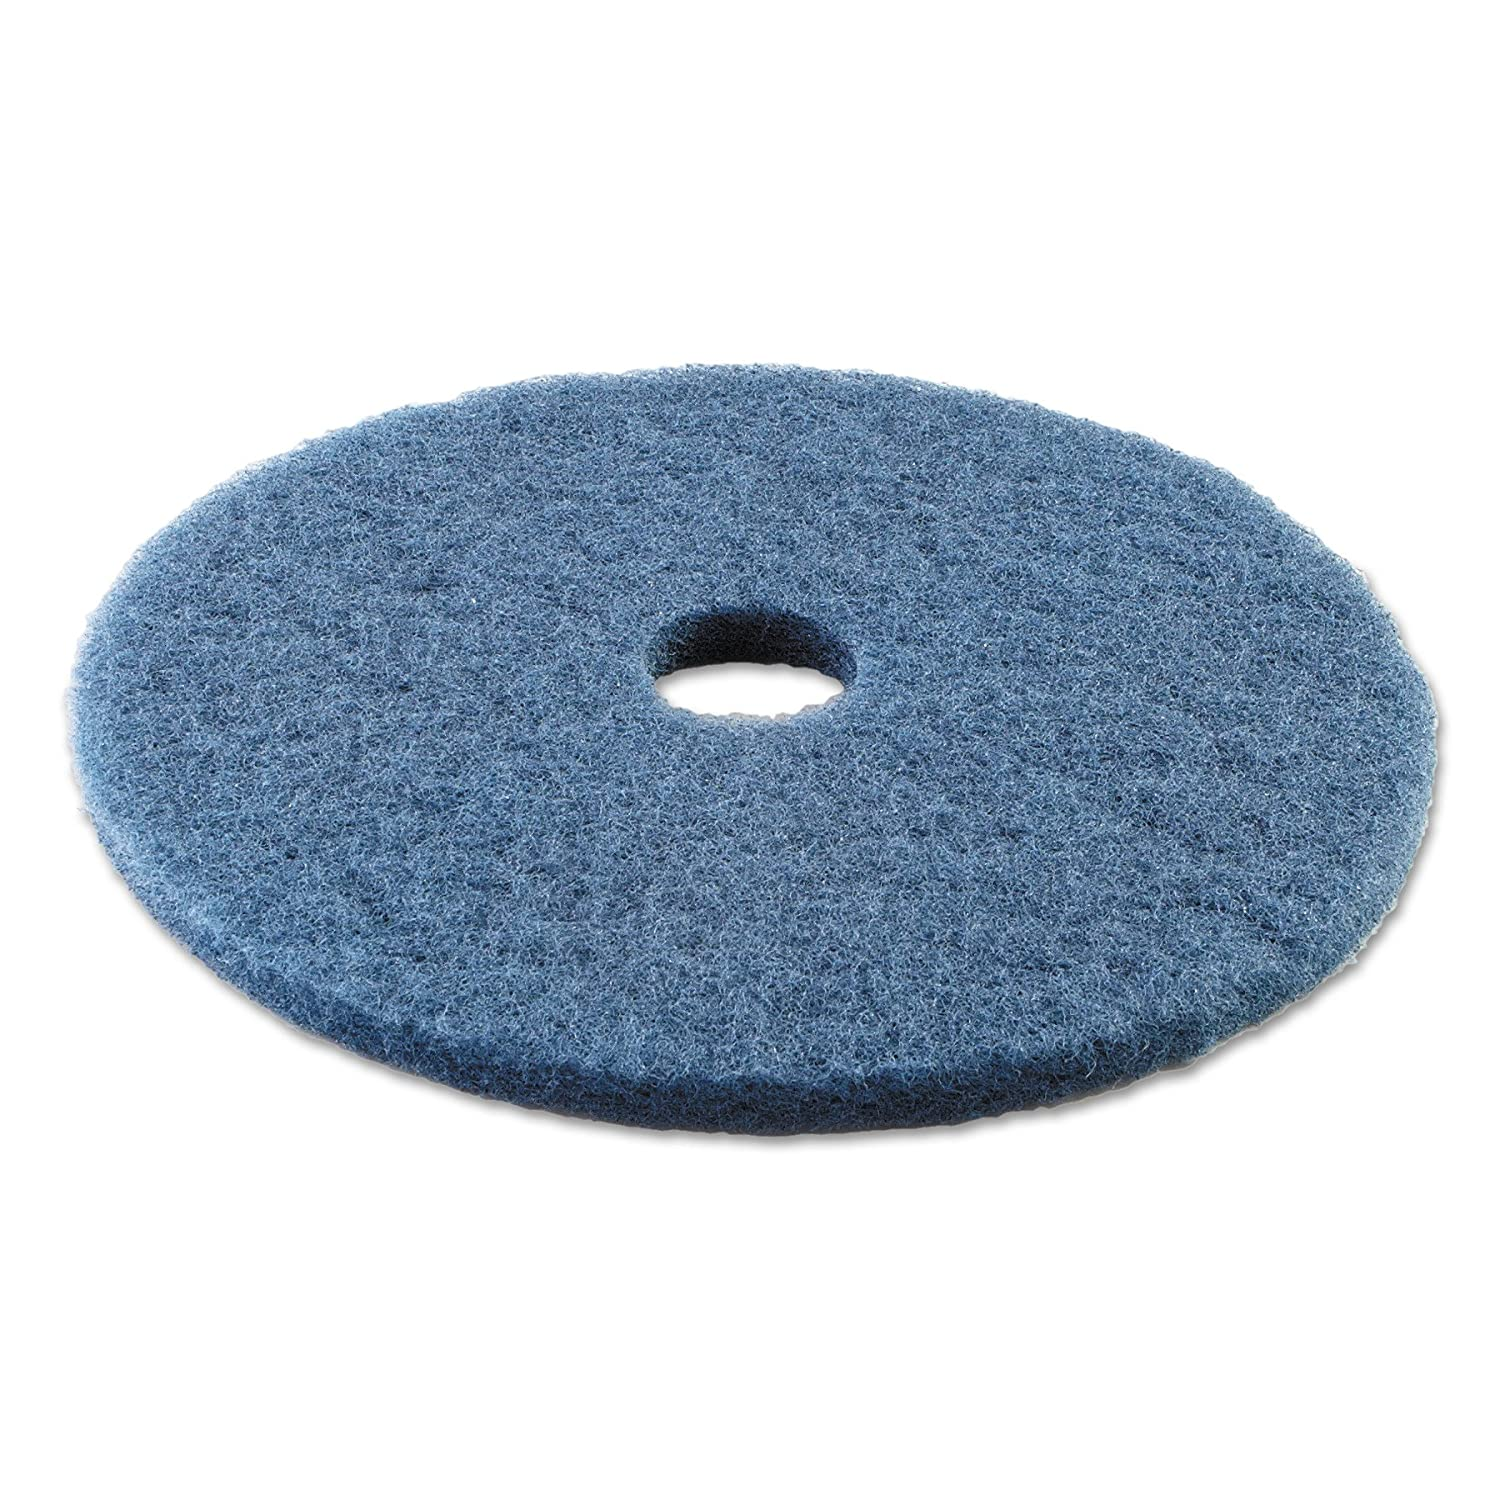 Blue Boardwalk BWK4020BLU Standard Scrubbing Floor Pads 20 Diameter Case of 5